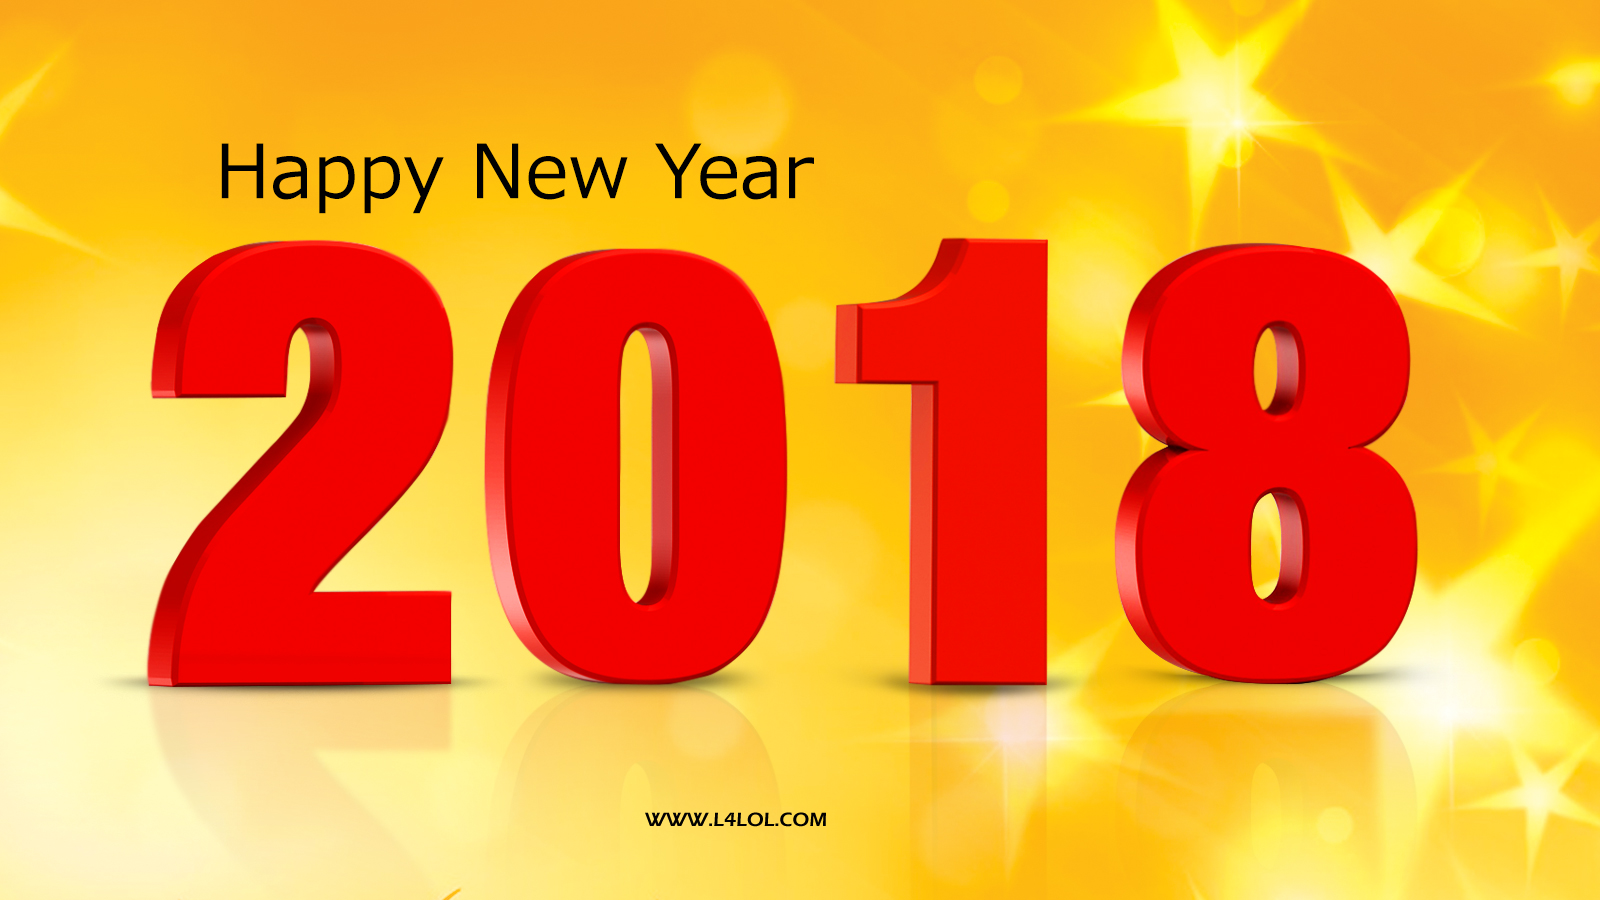 Related Keywords Suggestions for New Year 2018 1600x900